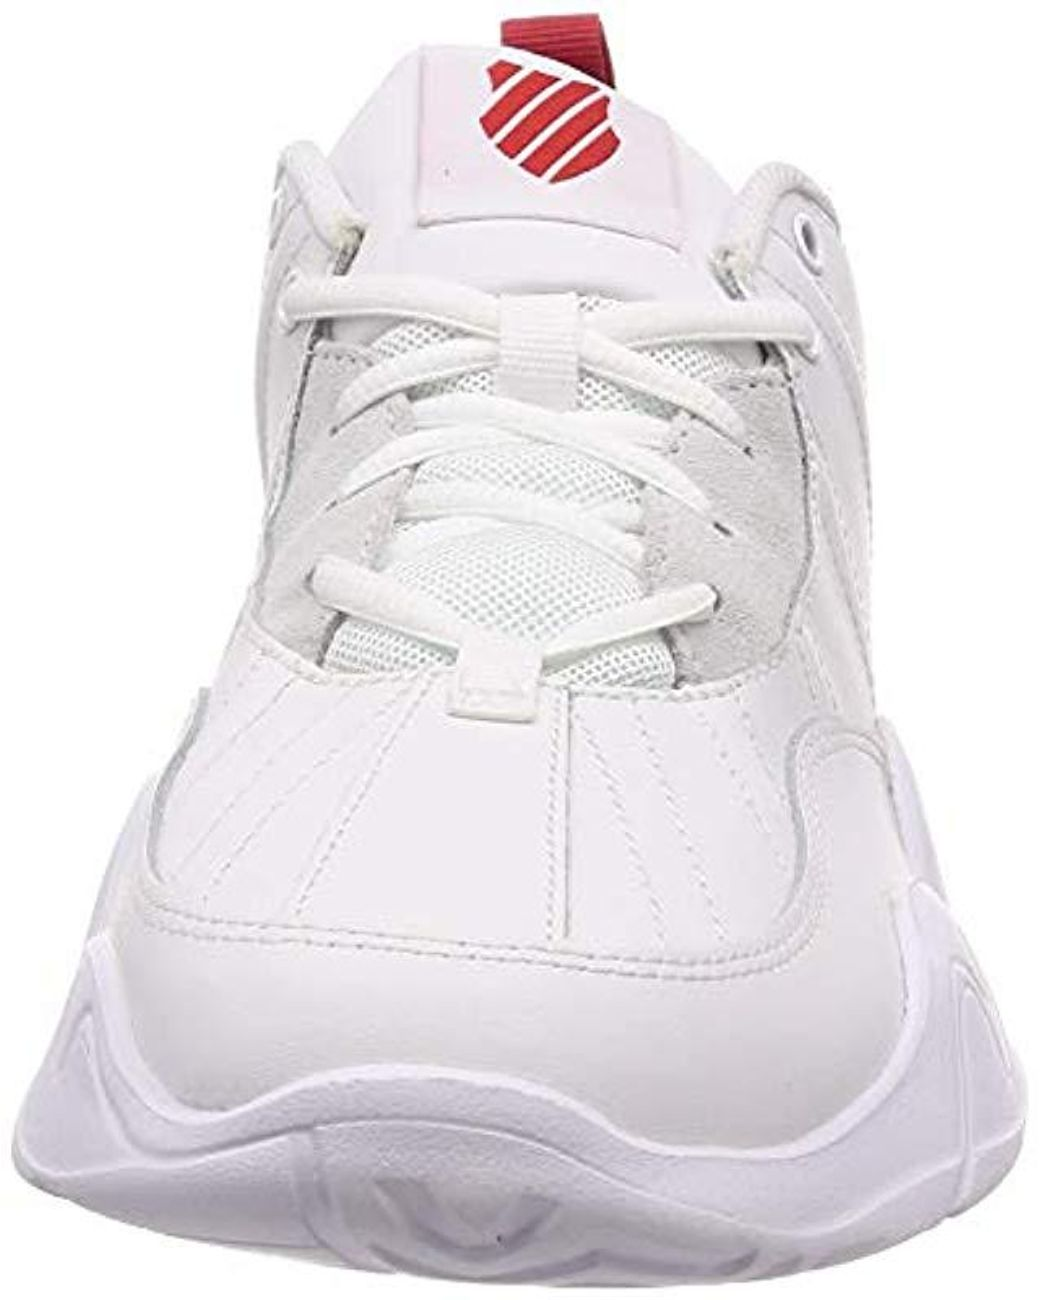 Details zu K Swiss Mens CR 329 Chunky Trainers Sports Shoes Low Lace Up Breathable